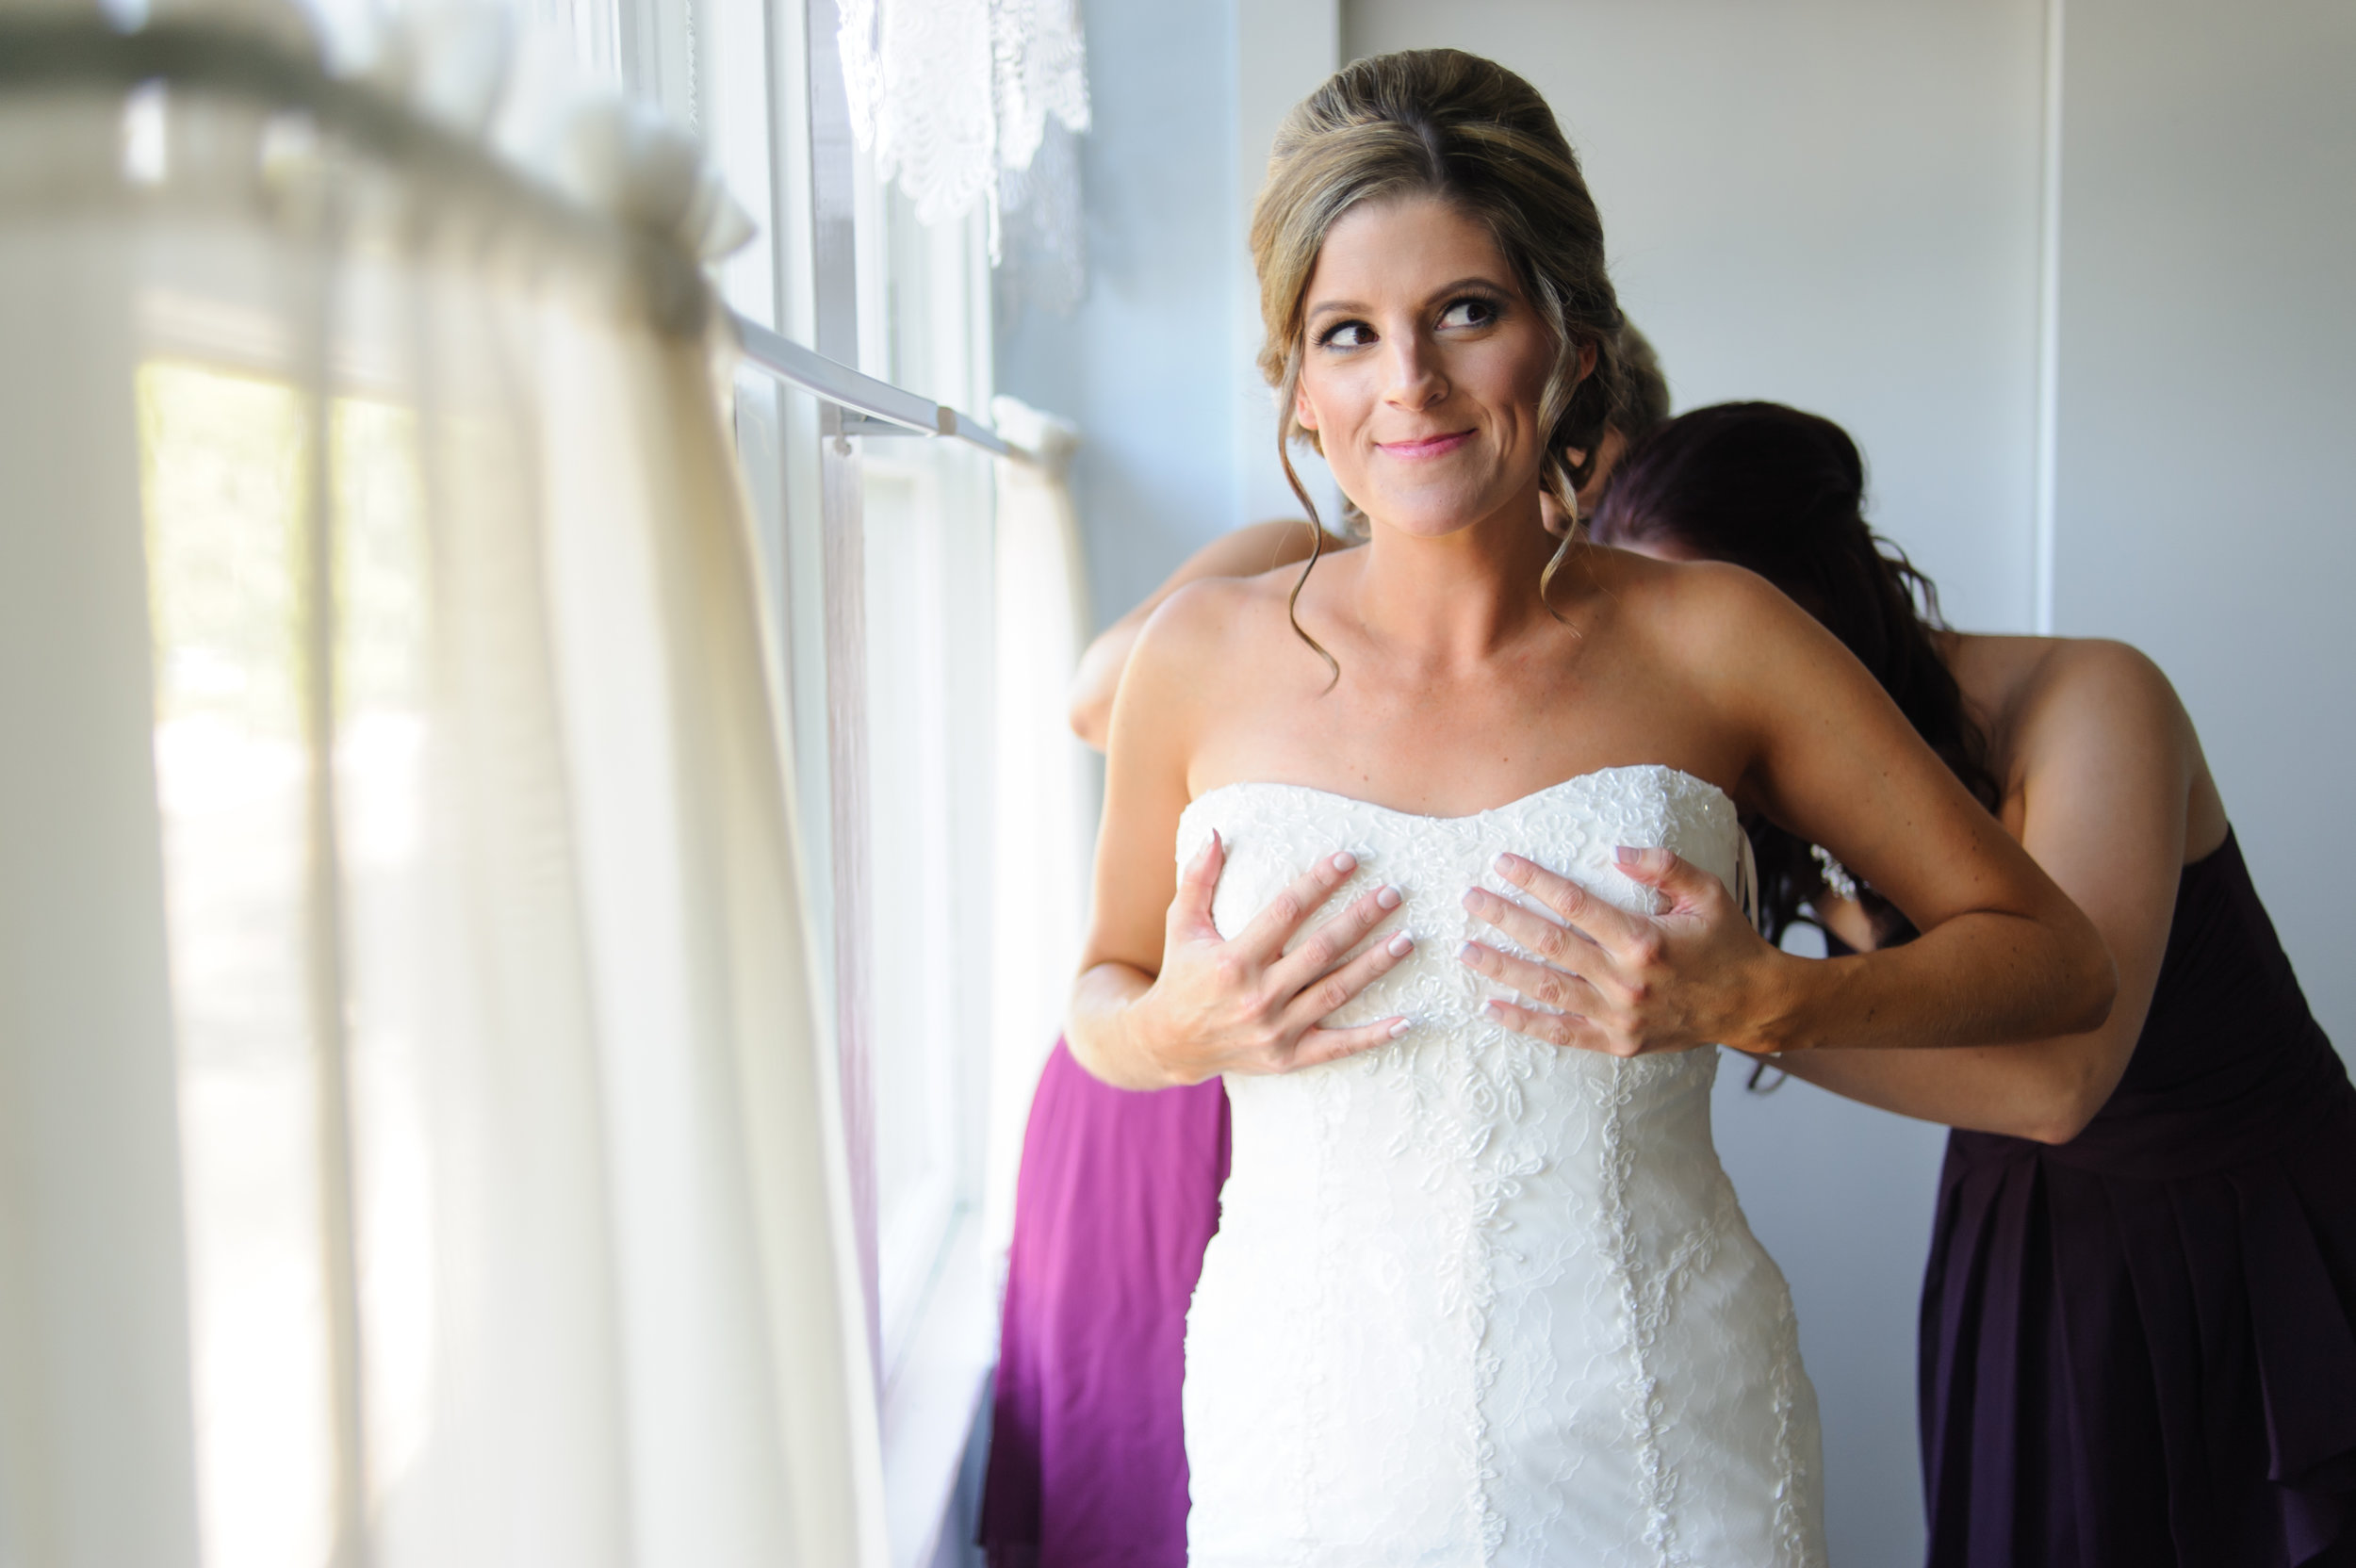 susan-brad-002-sacramento-wedding-photographer-katherine-nicole-photography.JPG